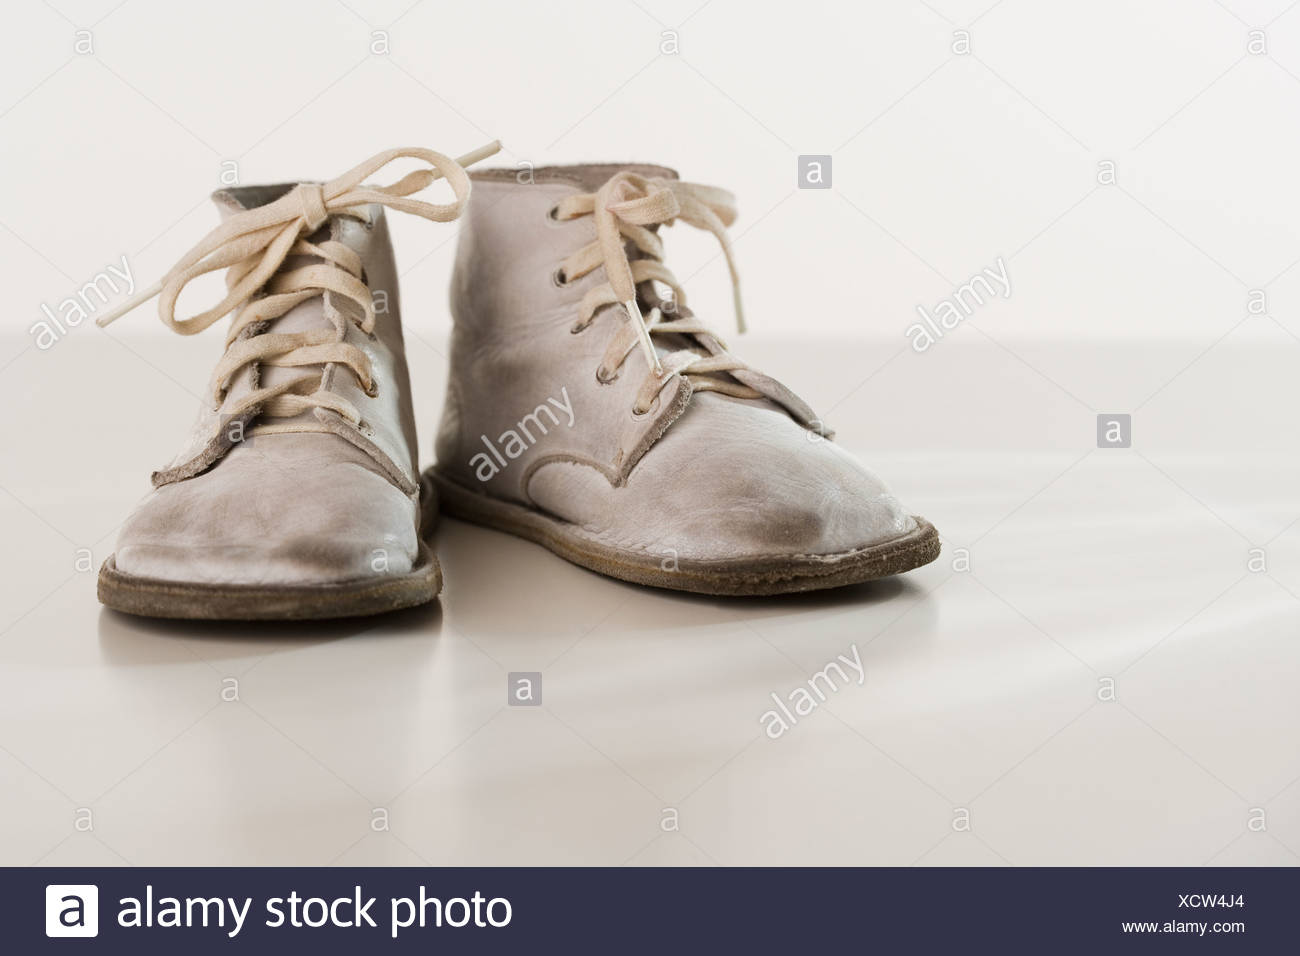 old fashioned baby shoes Stock Photo